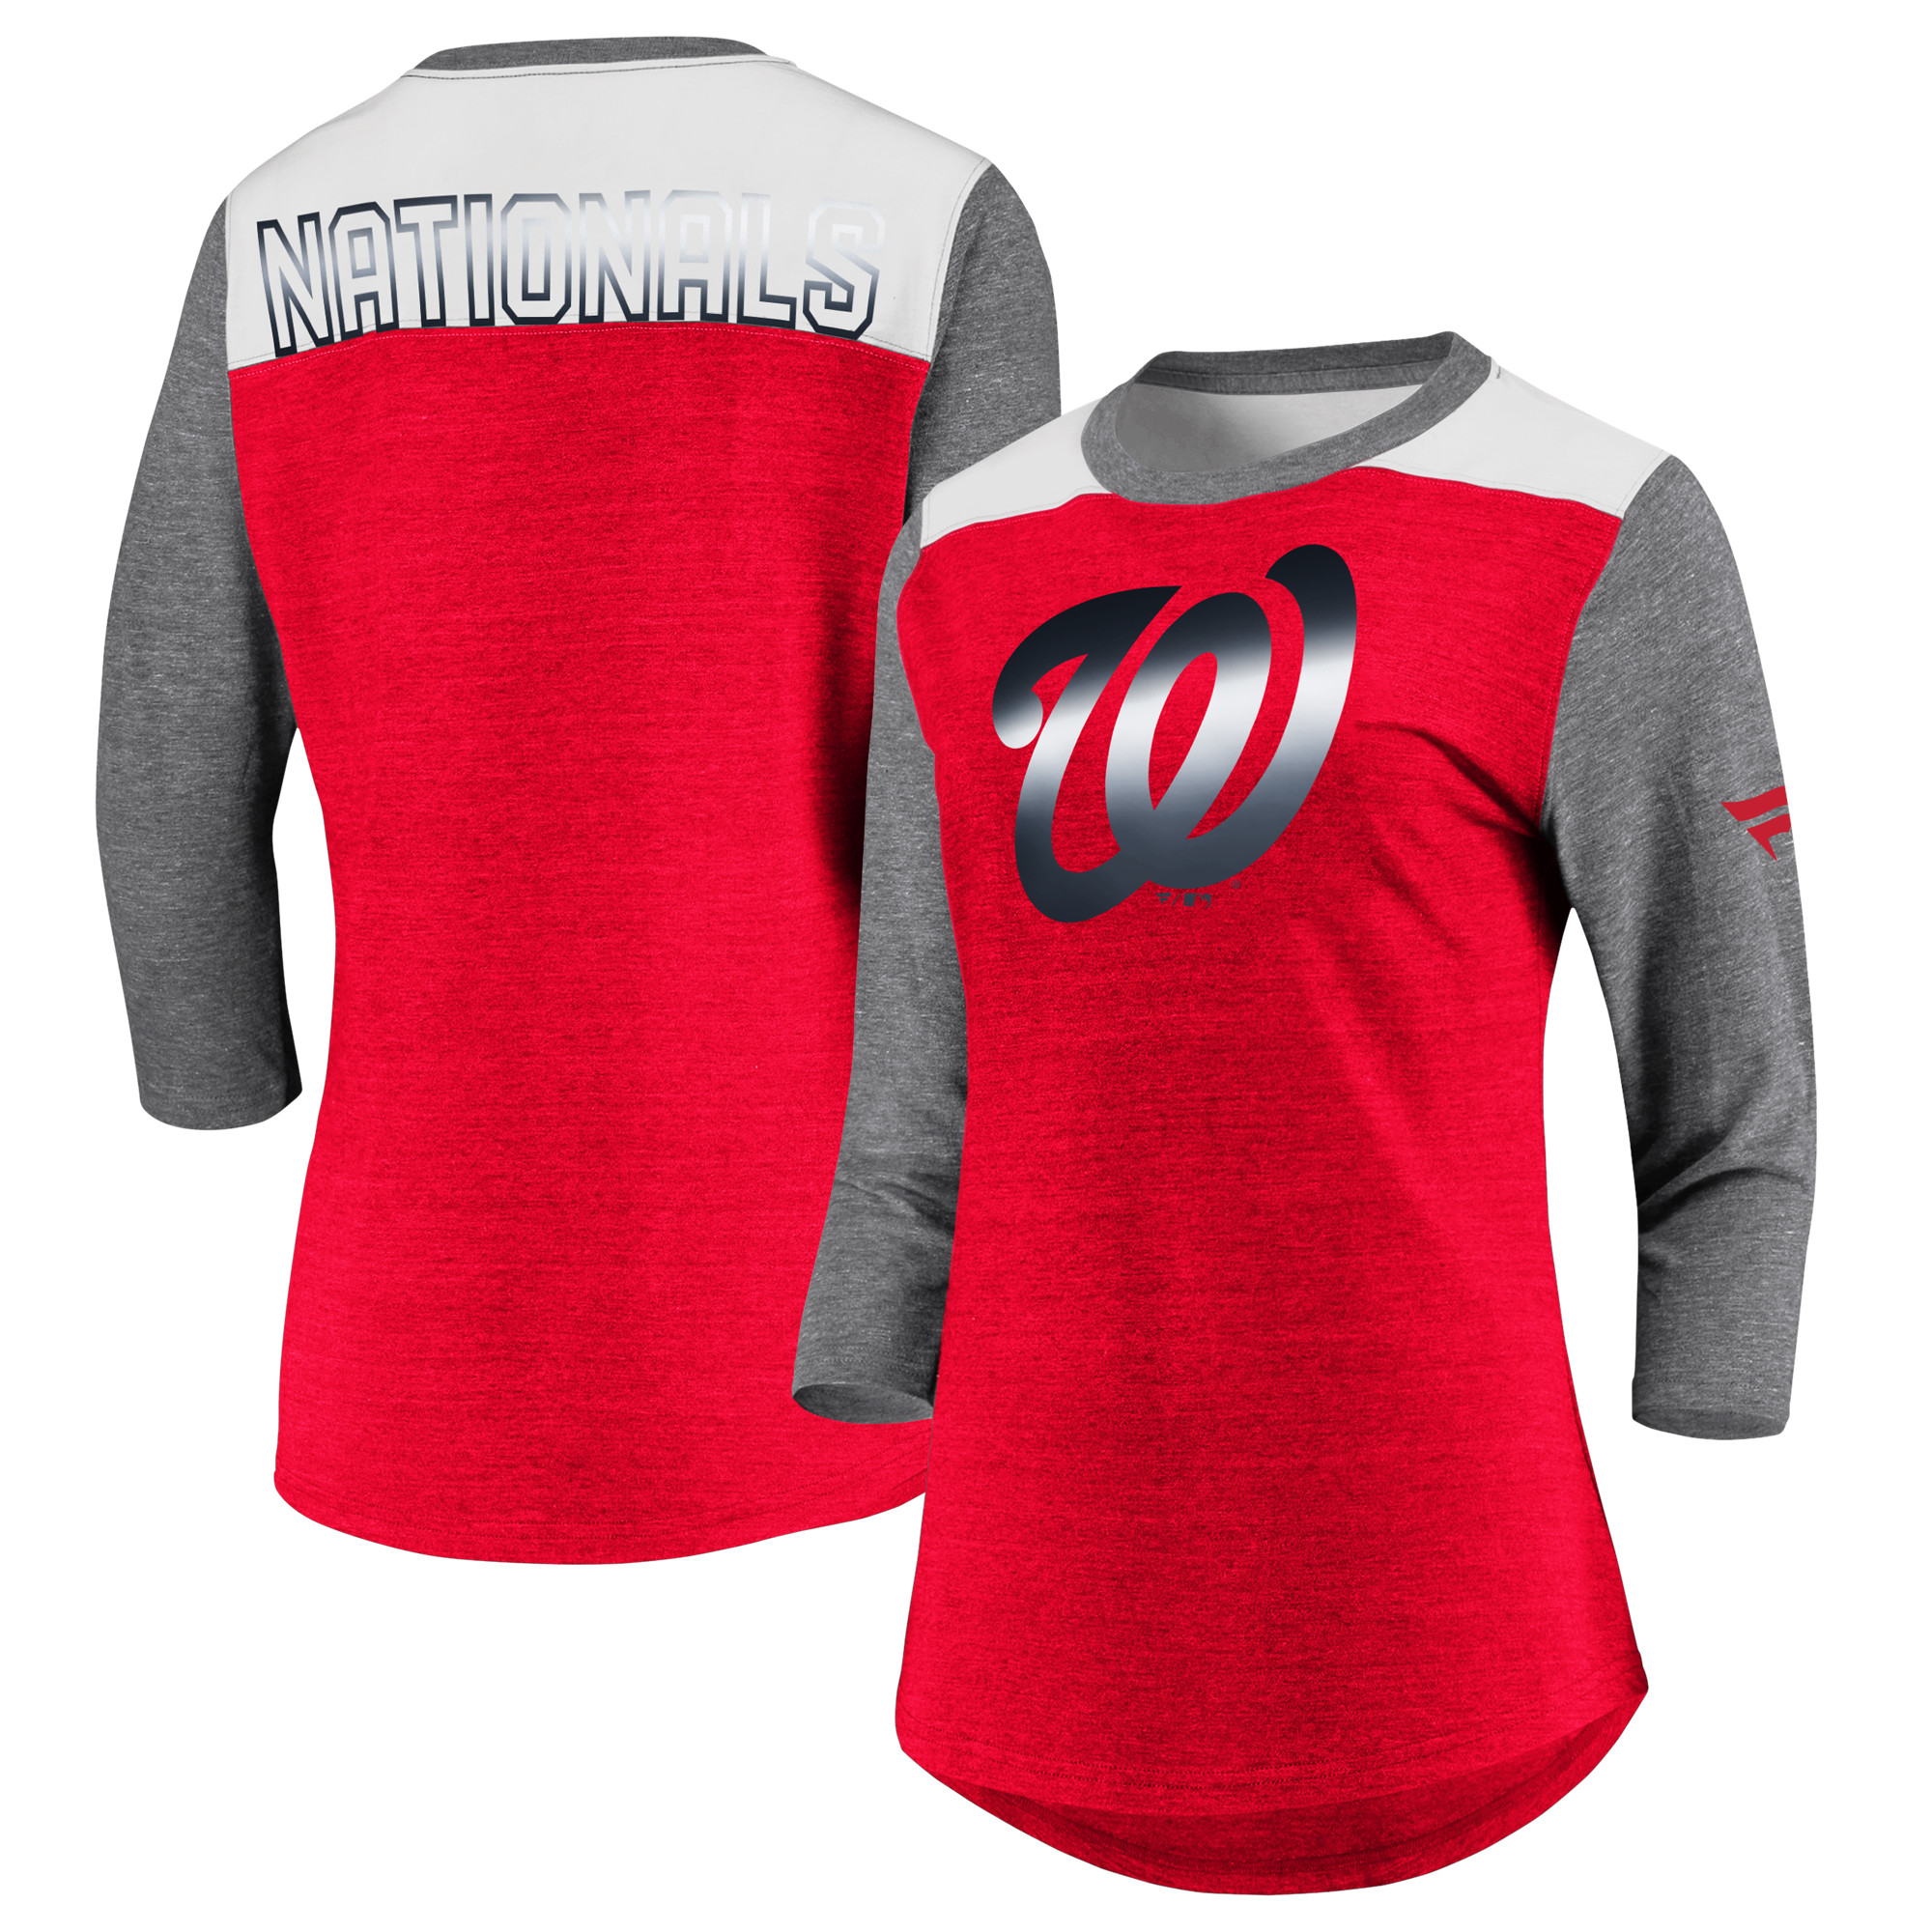 Washington Nationals Fanatics Branded Women's Iconic Tri-Blend 3/4 Sleeve T-Shirt - Red/Gray